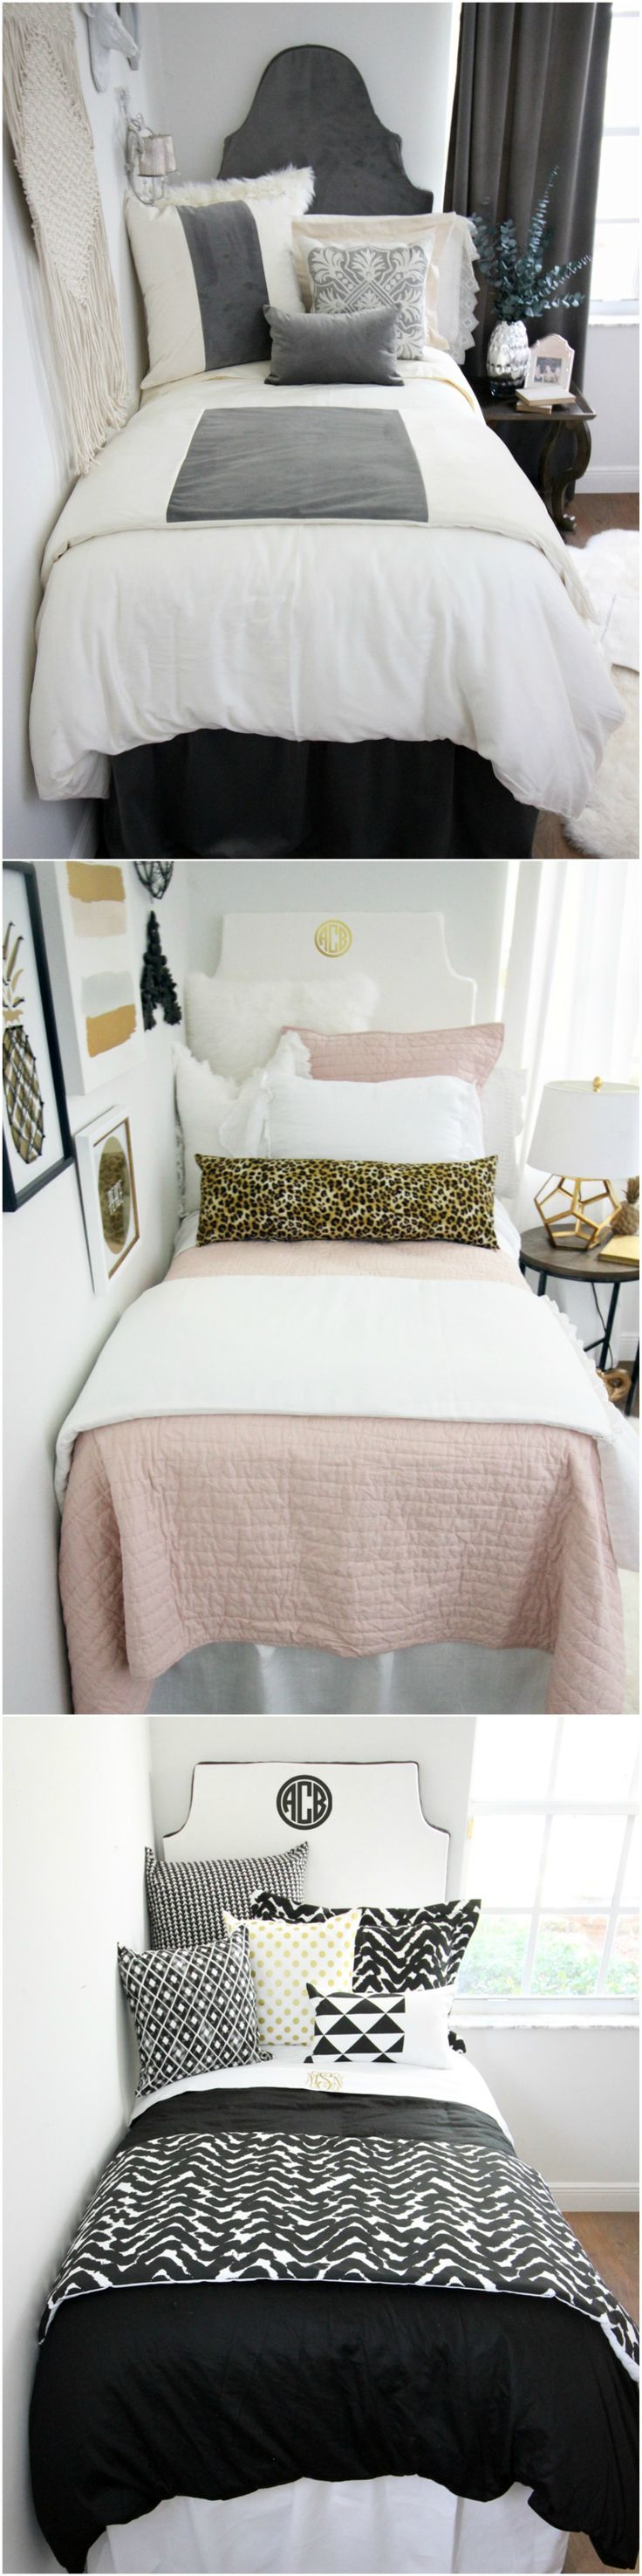 This year's hottest dorm room trends. Boho chic, classic neutrals, luxe textures and more. Shop dorm room inspiration here...